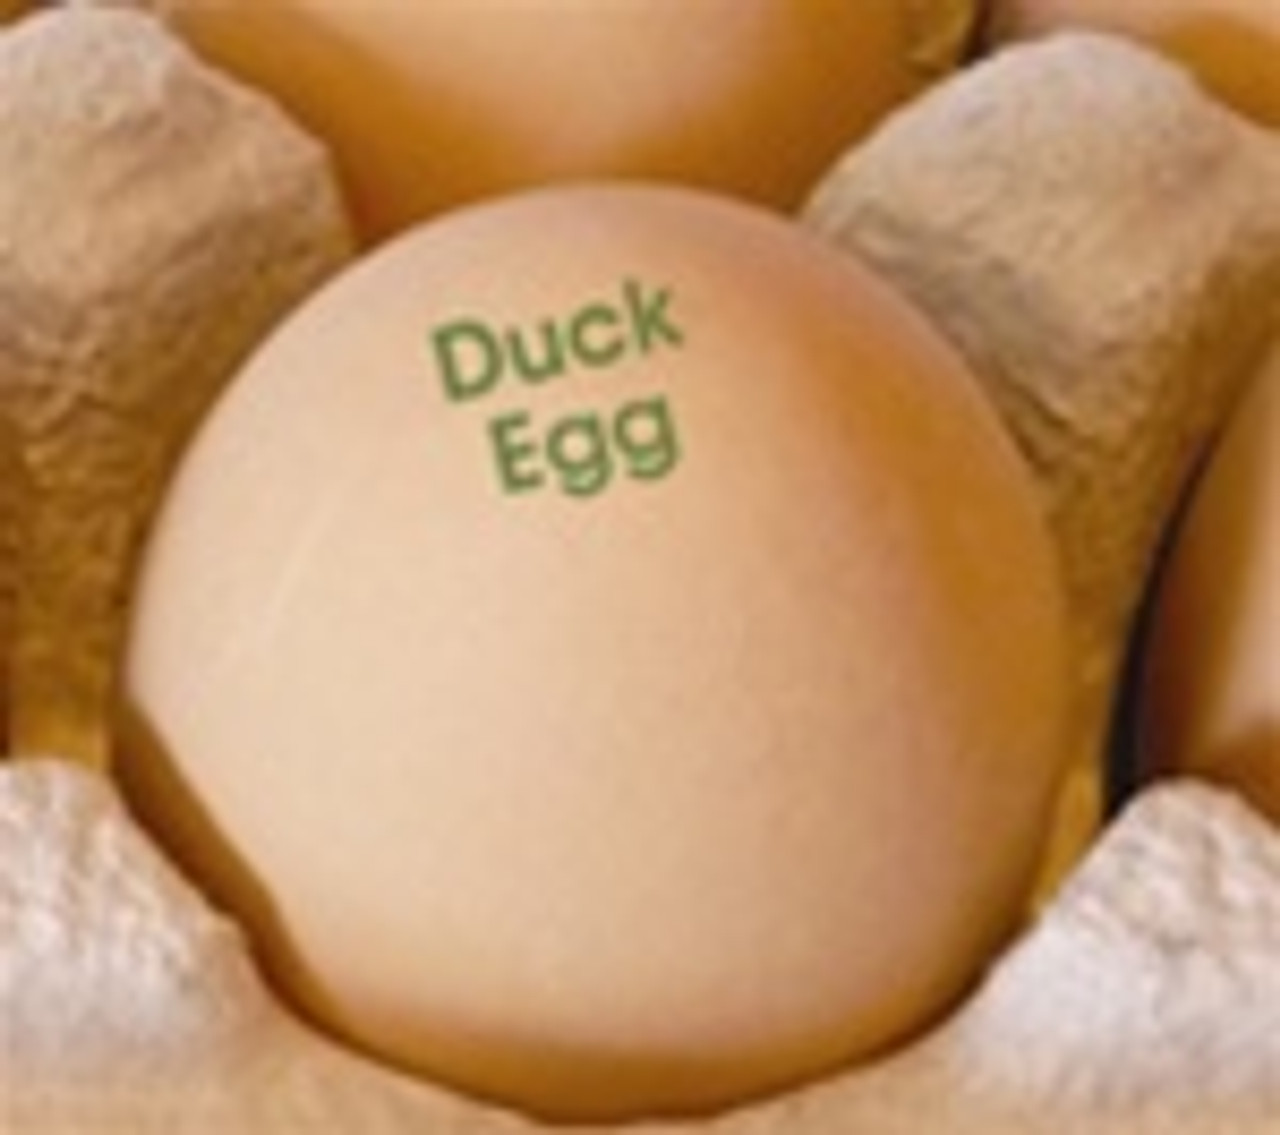 brown egg stamped with the phrase duck egg